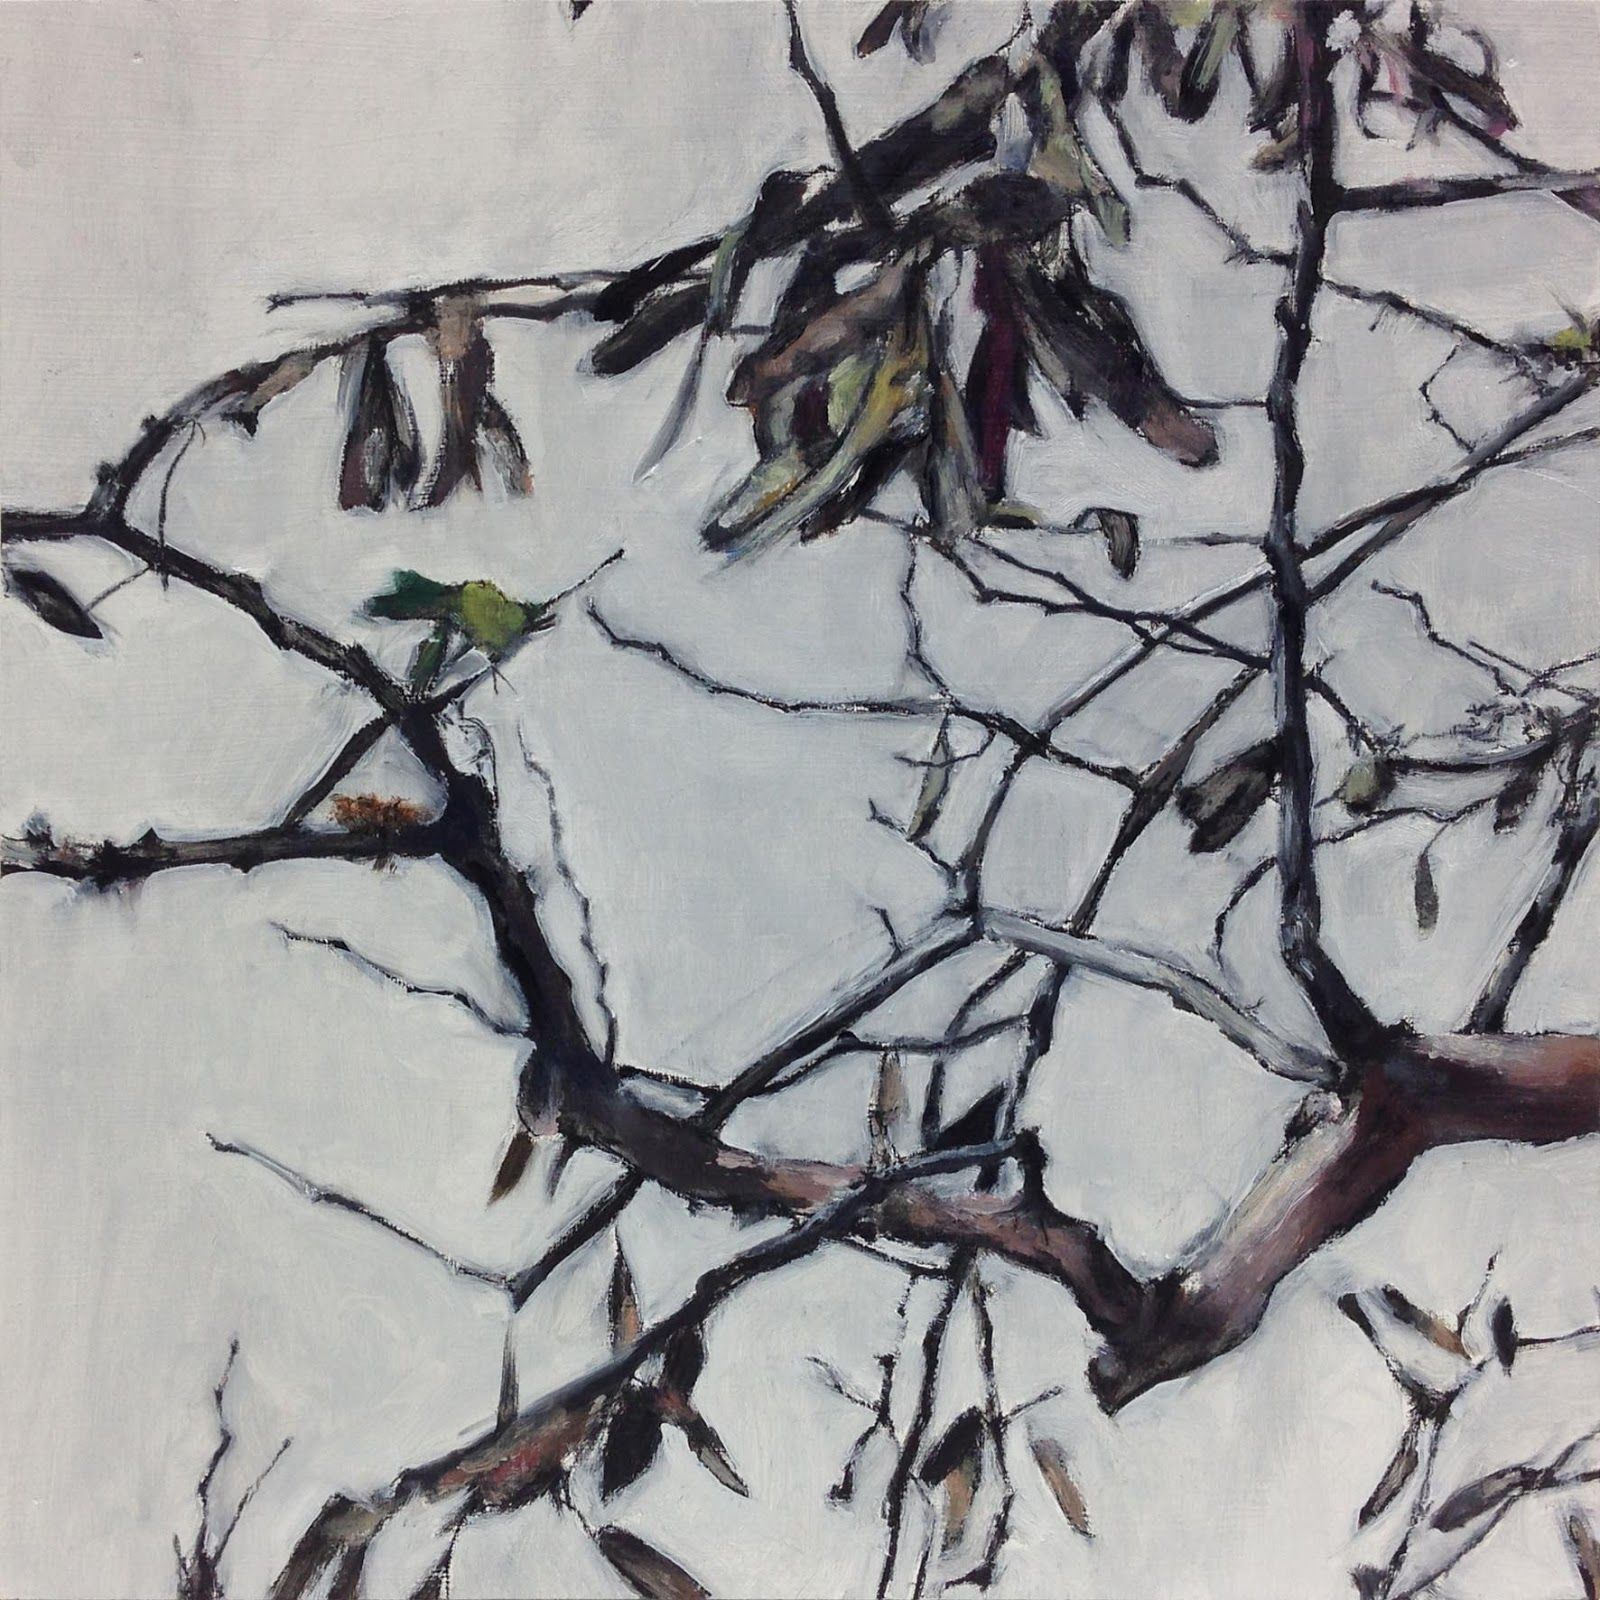 hermelando b m: Other stunted tree branches. Oil on board. 25 x 25 cm